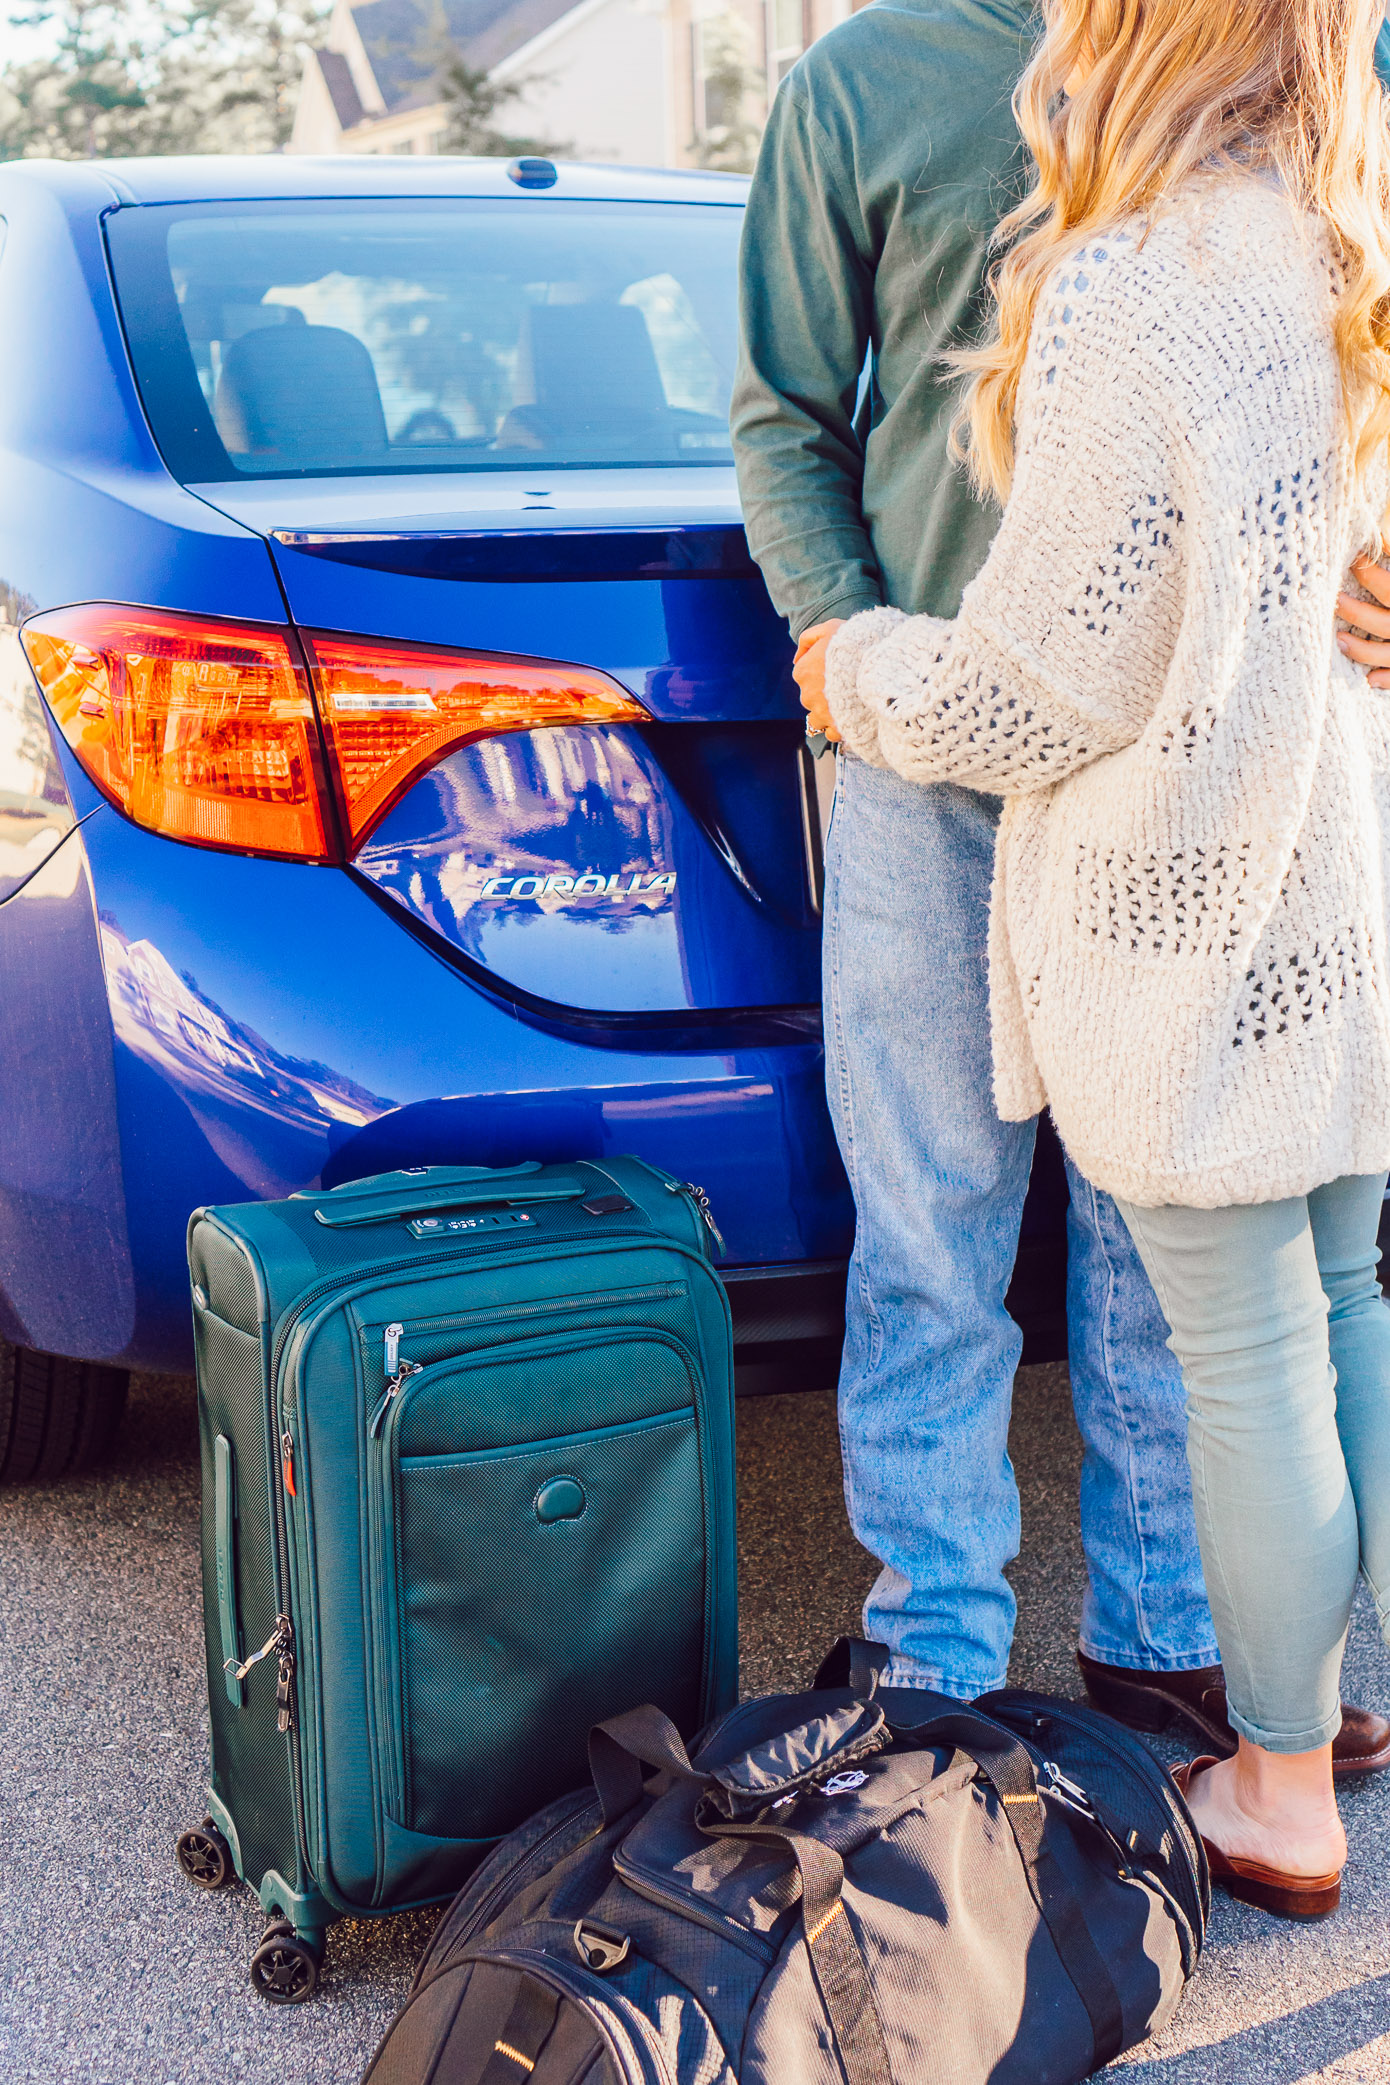 2019 Toyota Corolla   Five Ways to Reconnect on a Road Trip featured on Louella Reese Life & Style Blog